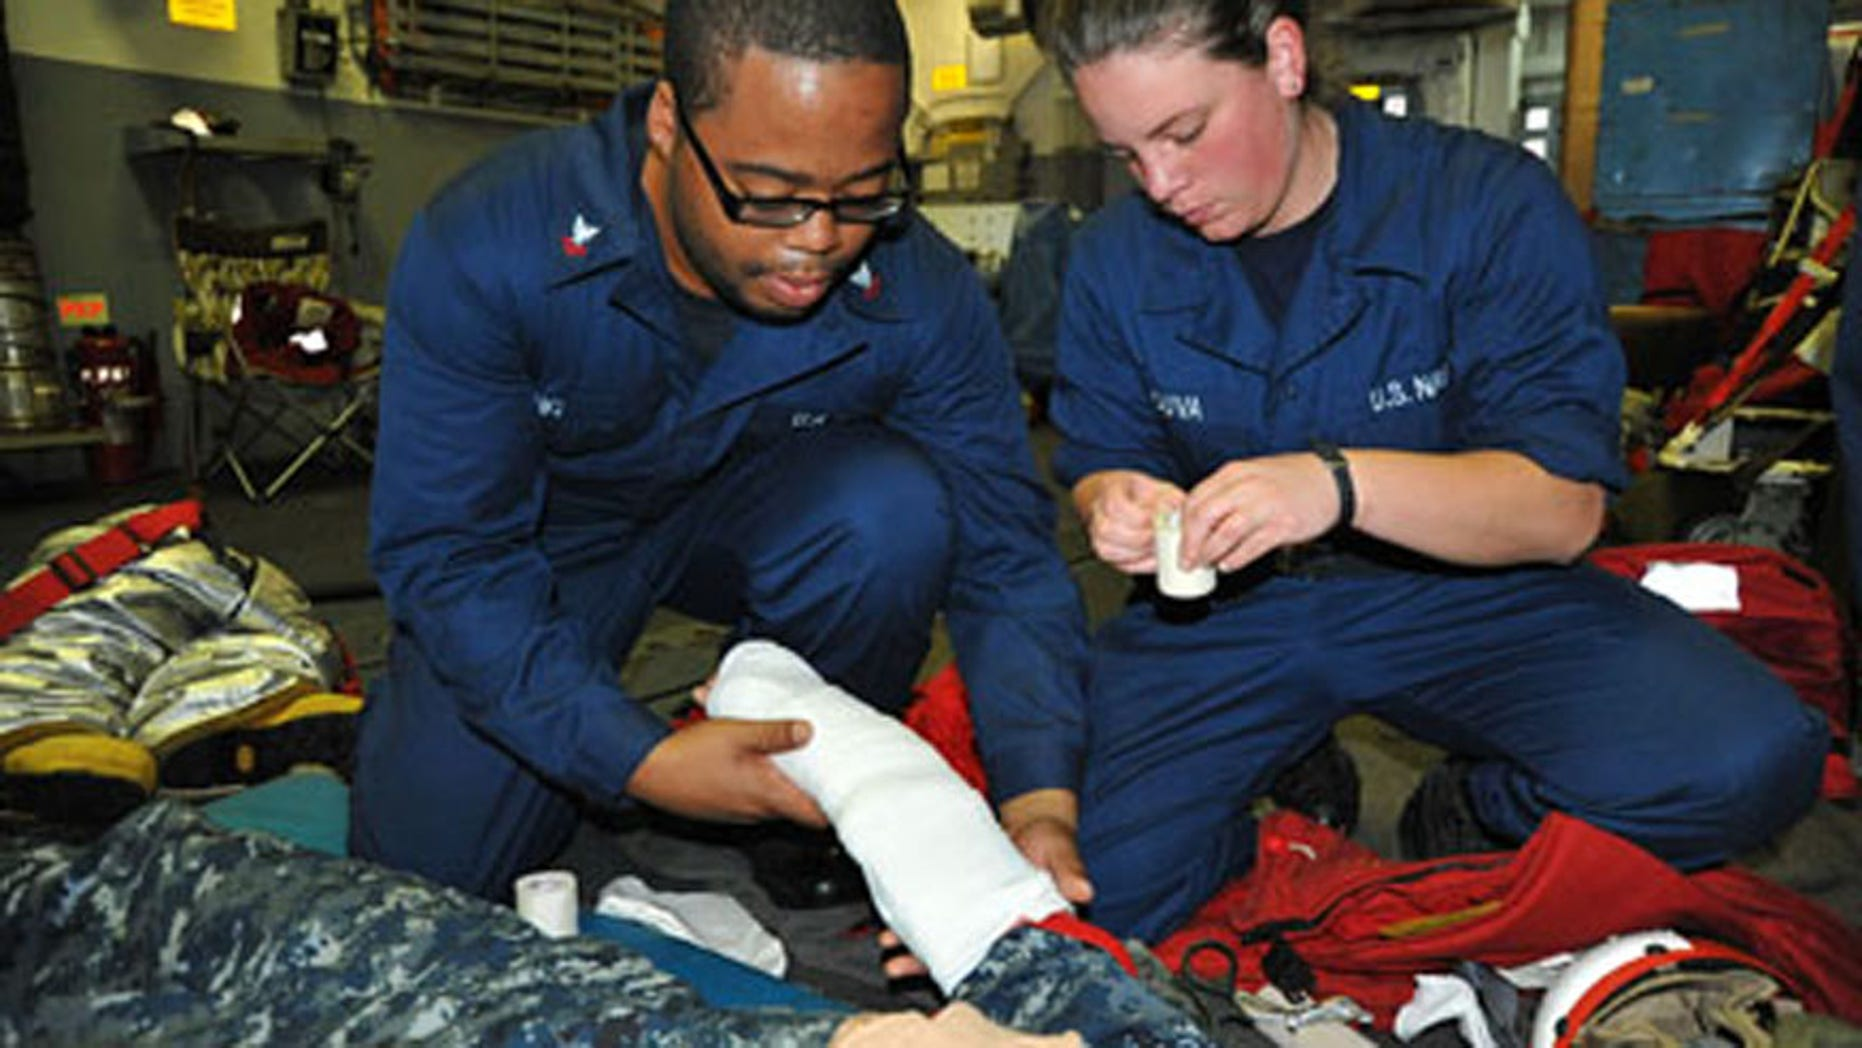 Yeoman 2nd Class Warren Ewing and Sonar Technician (Surface) Seaman Kelly Souva, both assigned to the Arleigh Burke-class guided-missile destroyer USS McCampbell (DDG 85), respond to a simulated medical casualty during a general quarters drill at sea.